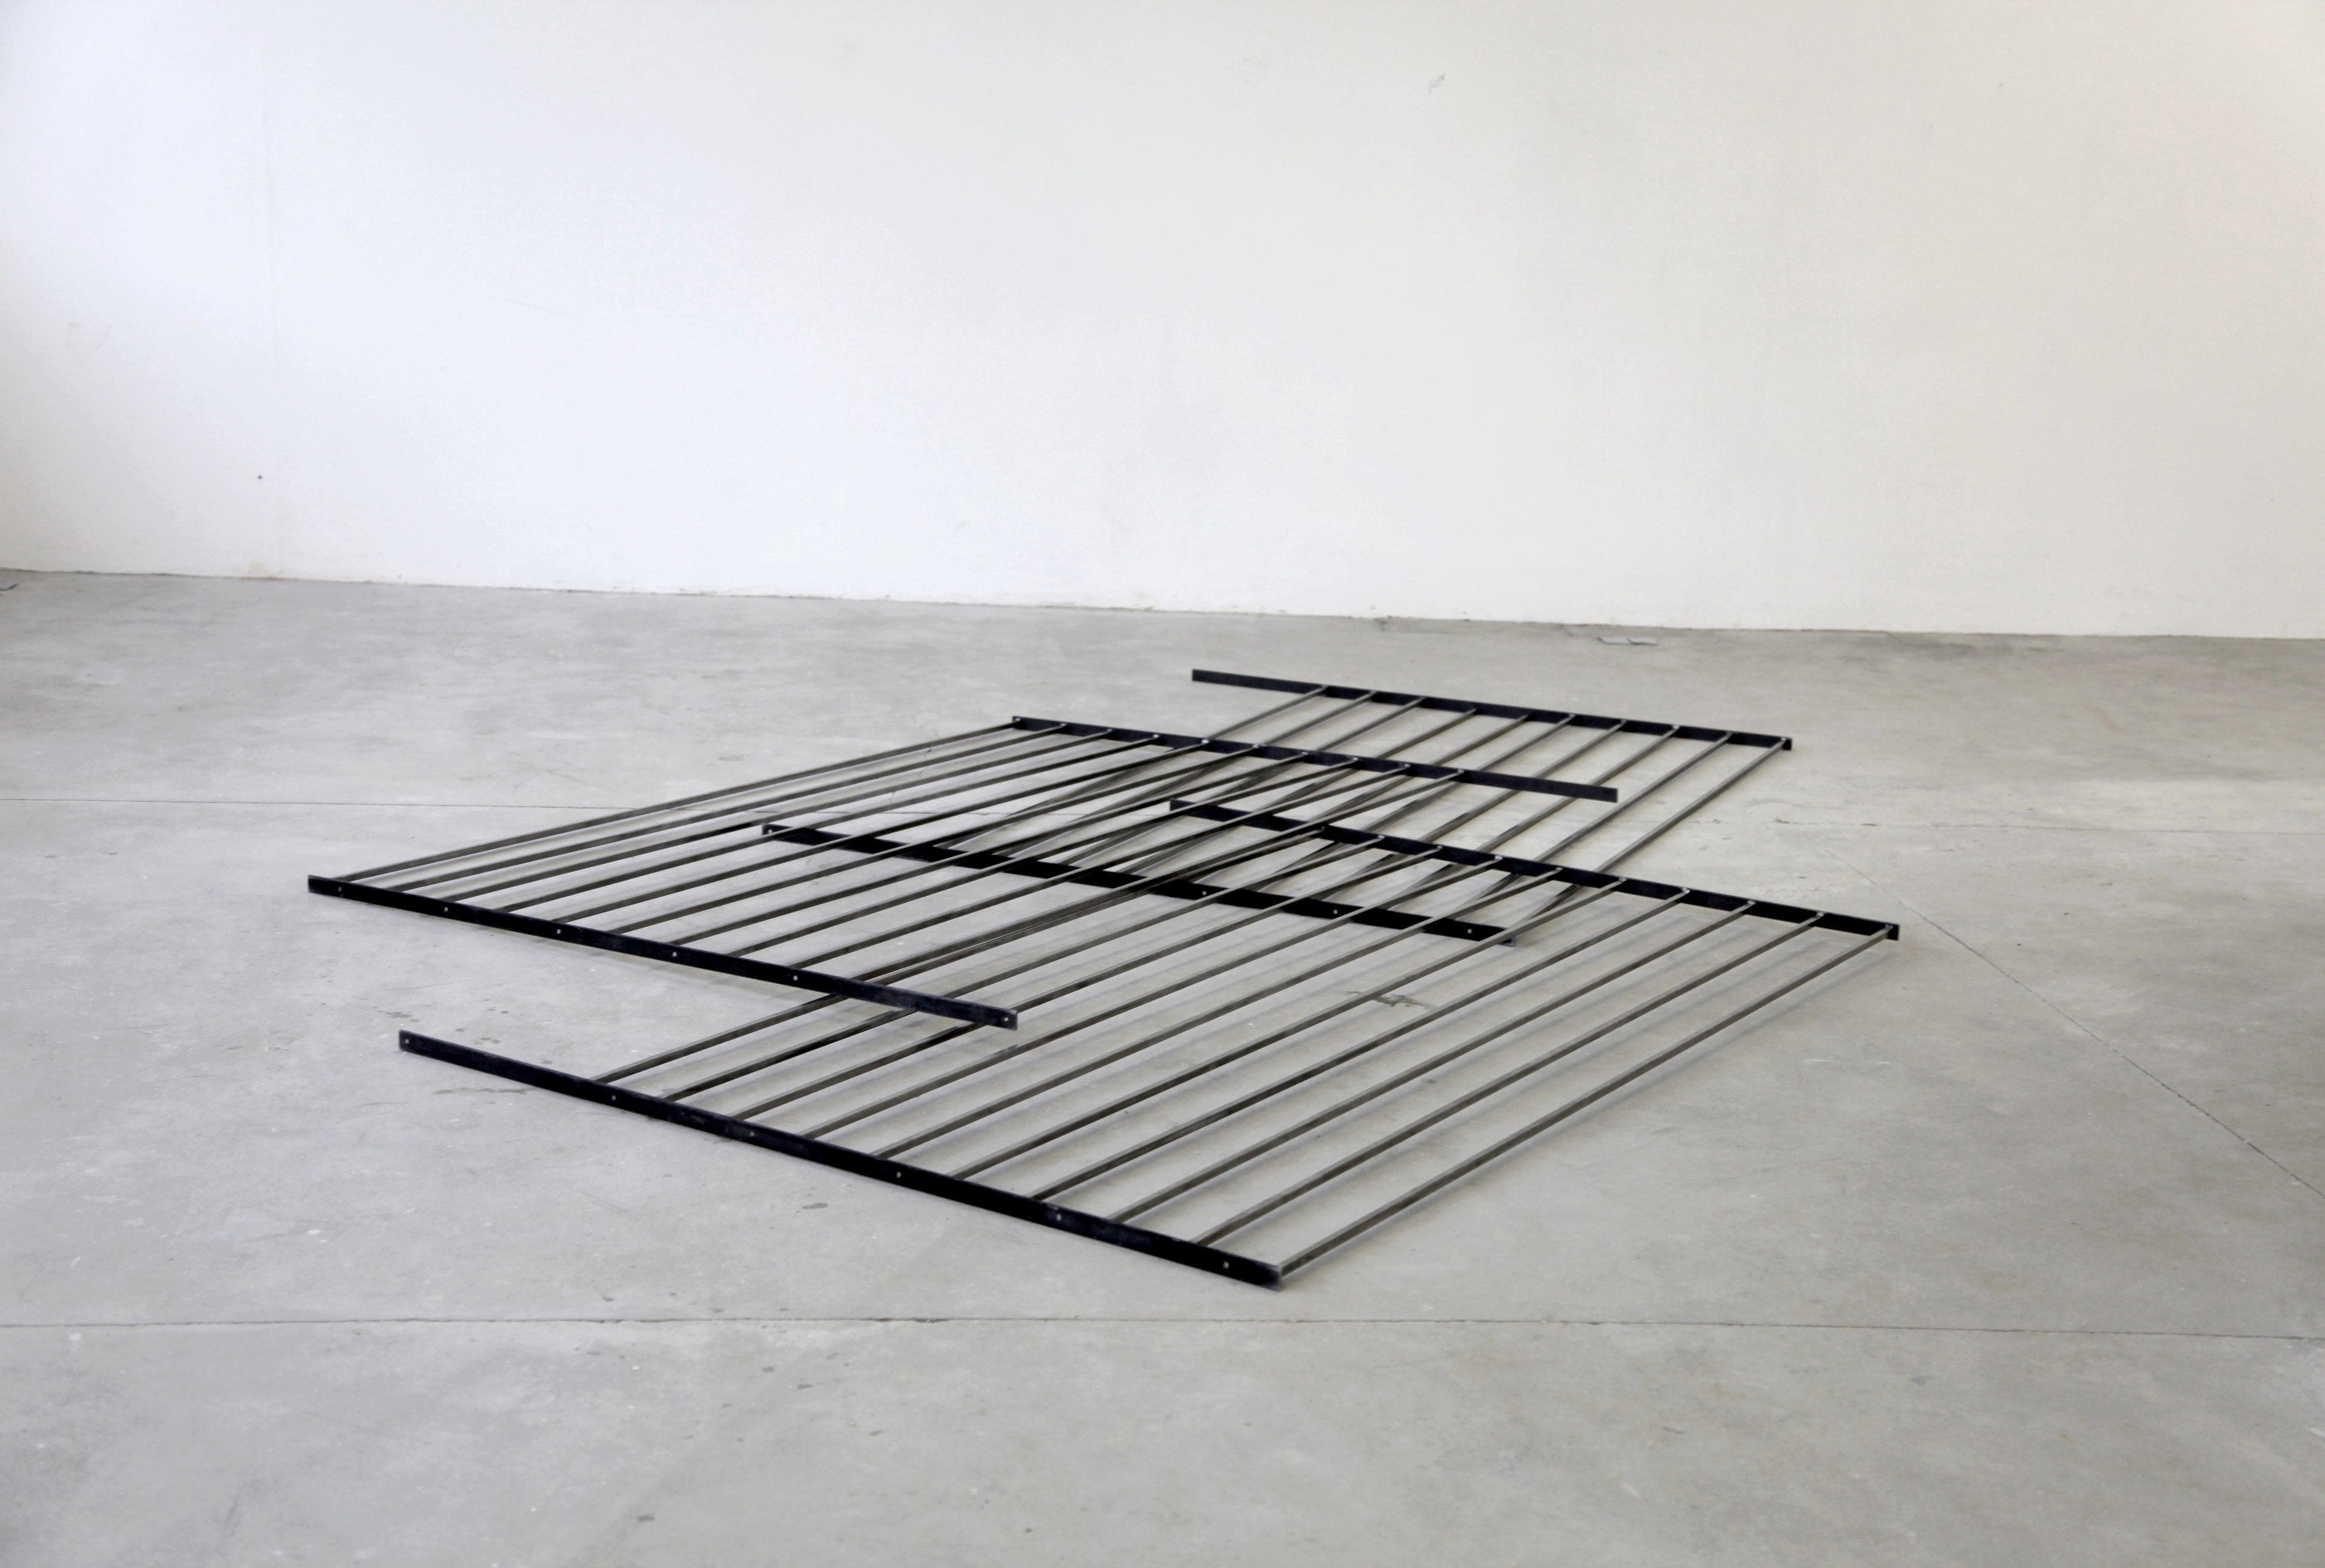 Simona Brinkmann, Bridges Become Doors, 2012-2016, steel and graphite paste, floor sculpture, collapsed gate doors